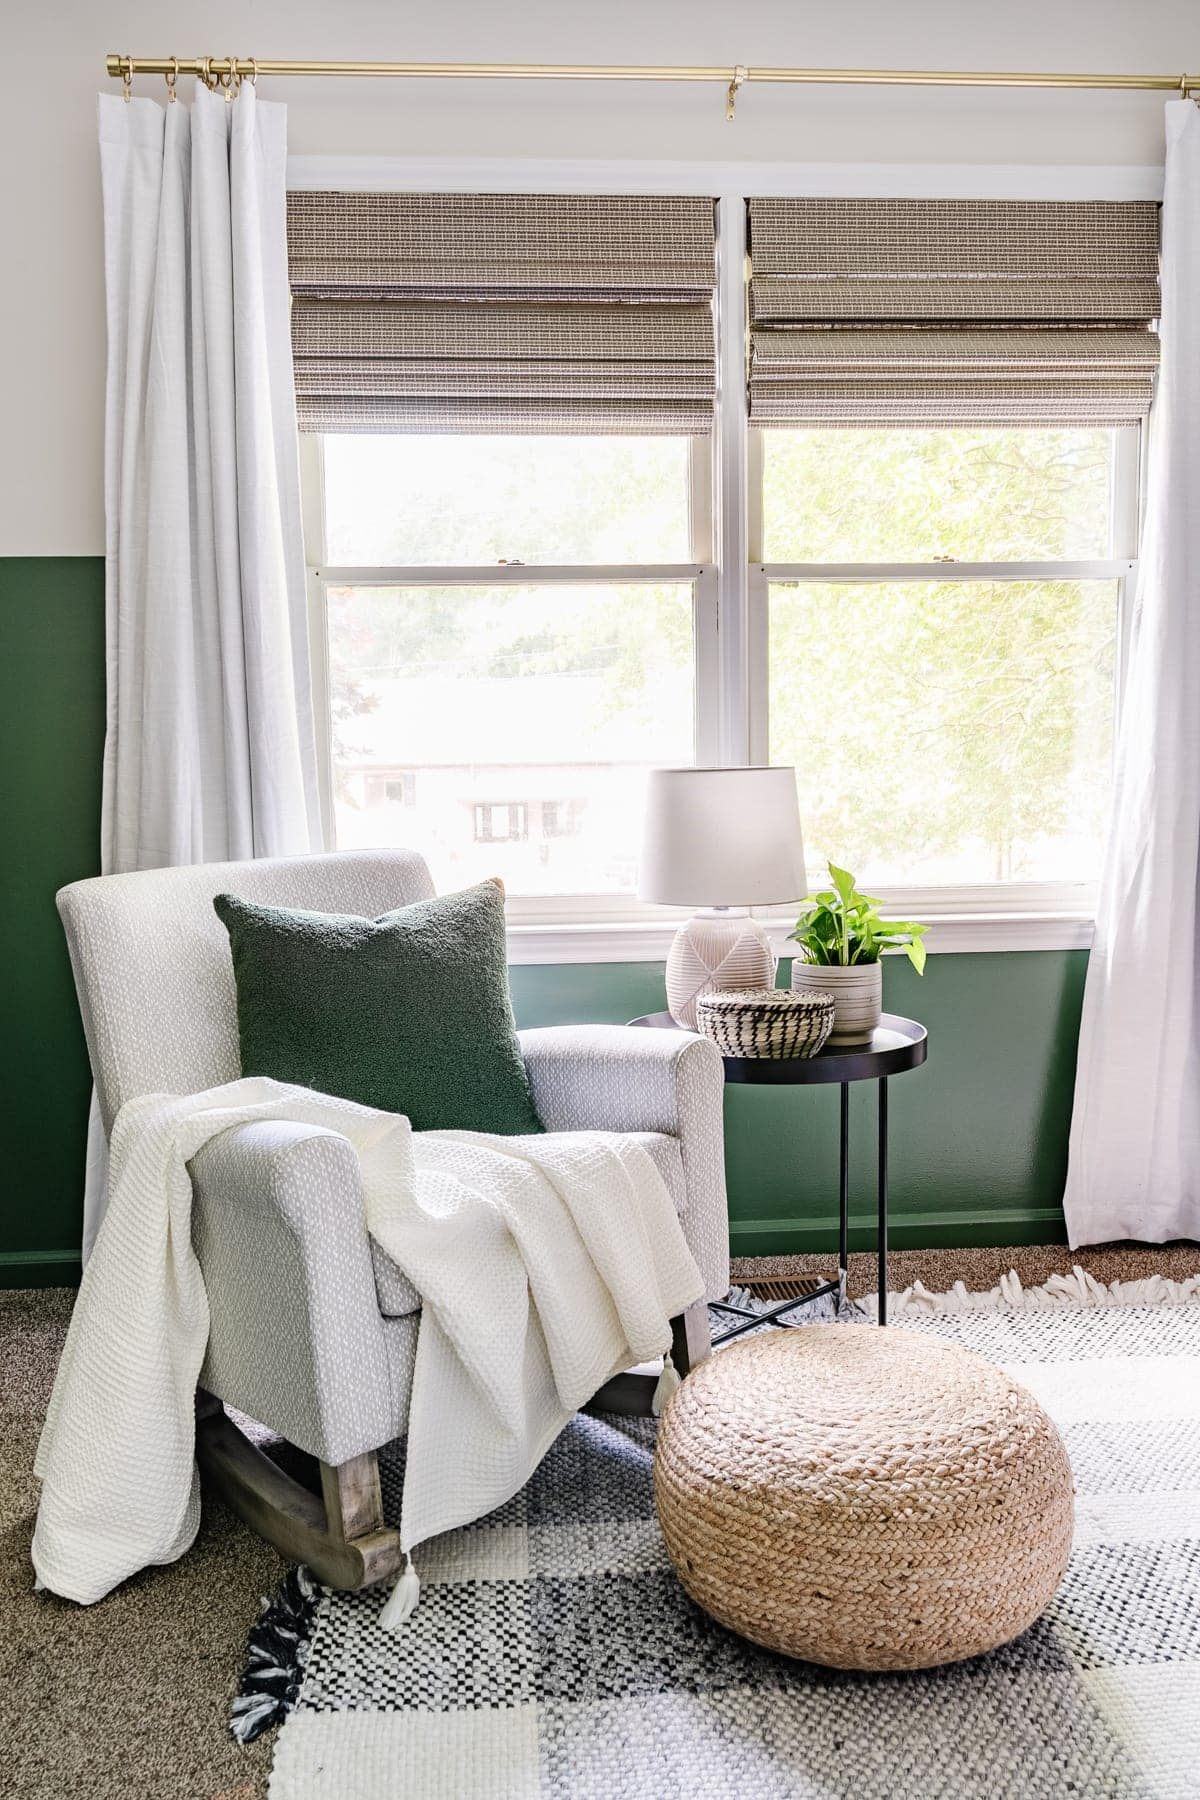 nursery with green paint, plaid rug, and gray rocking chair